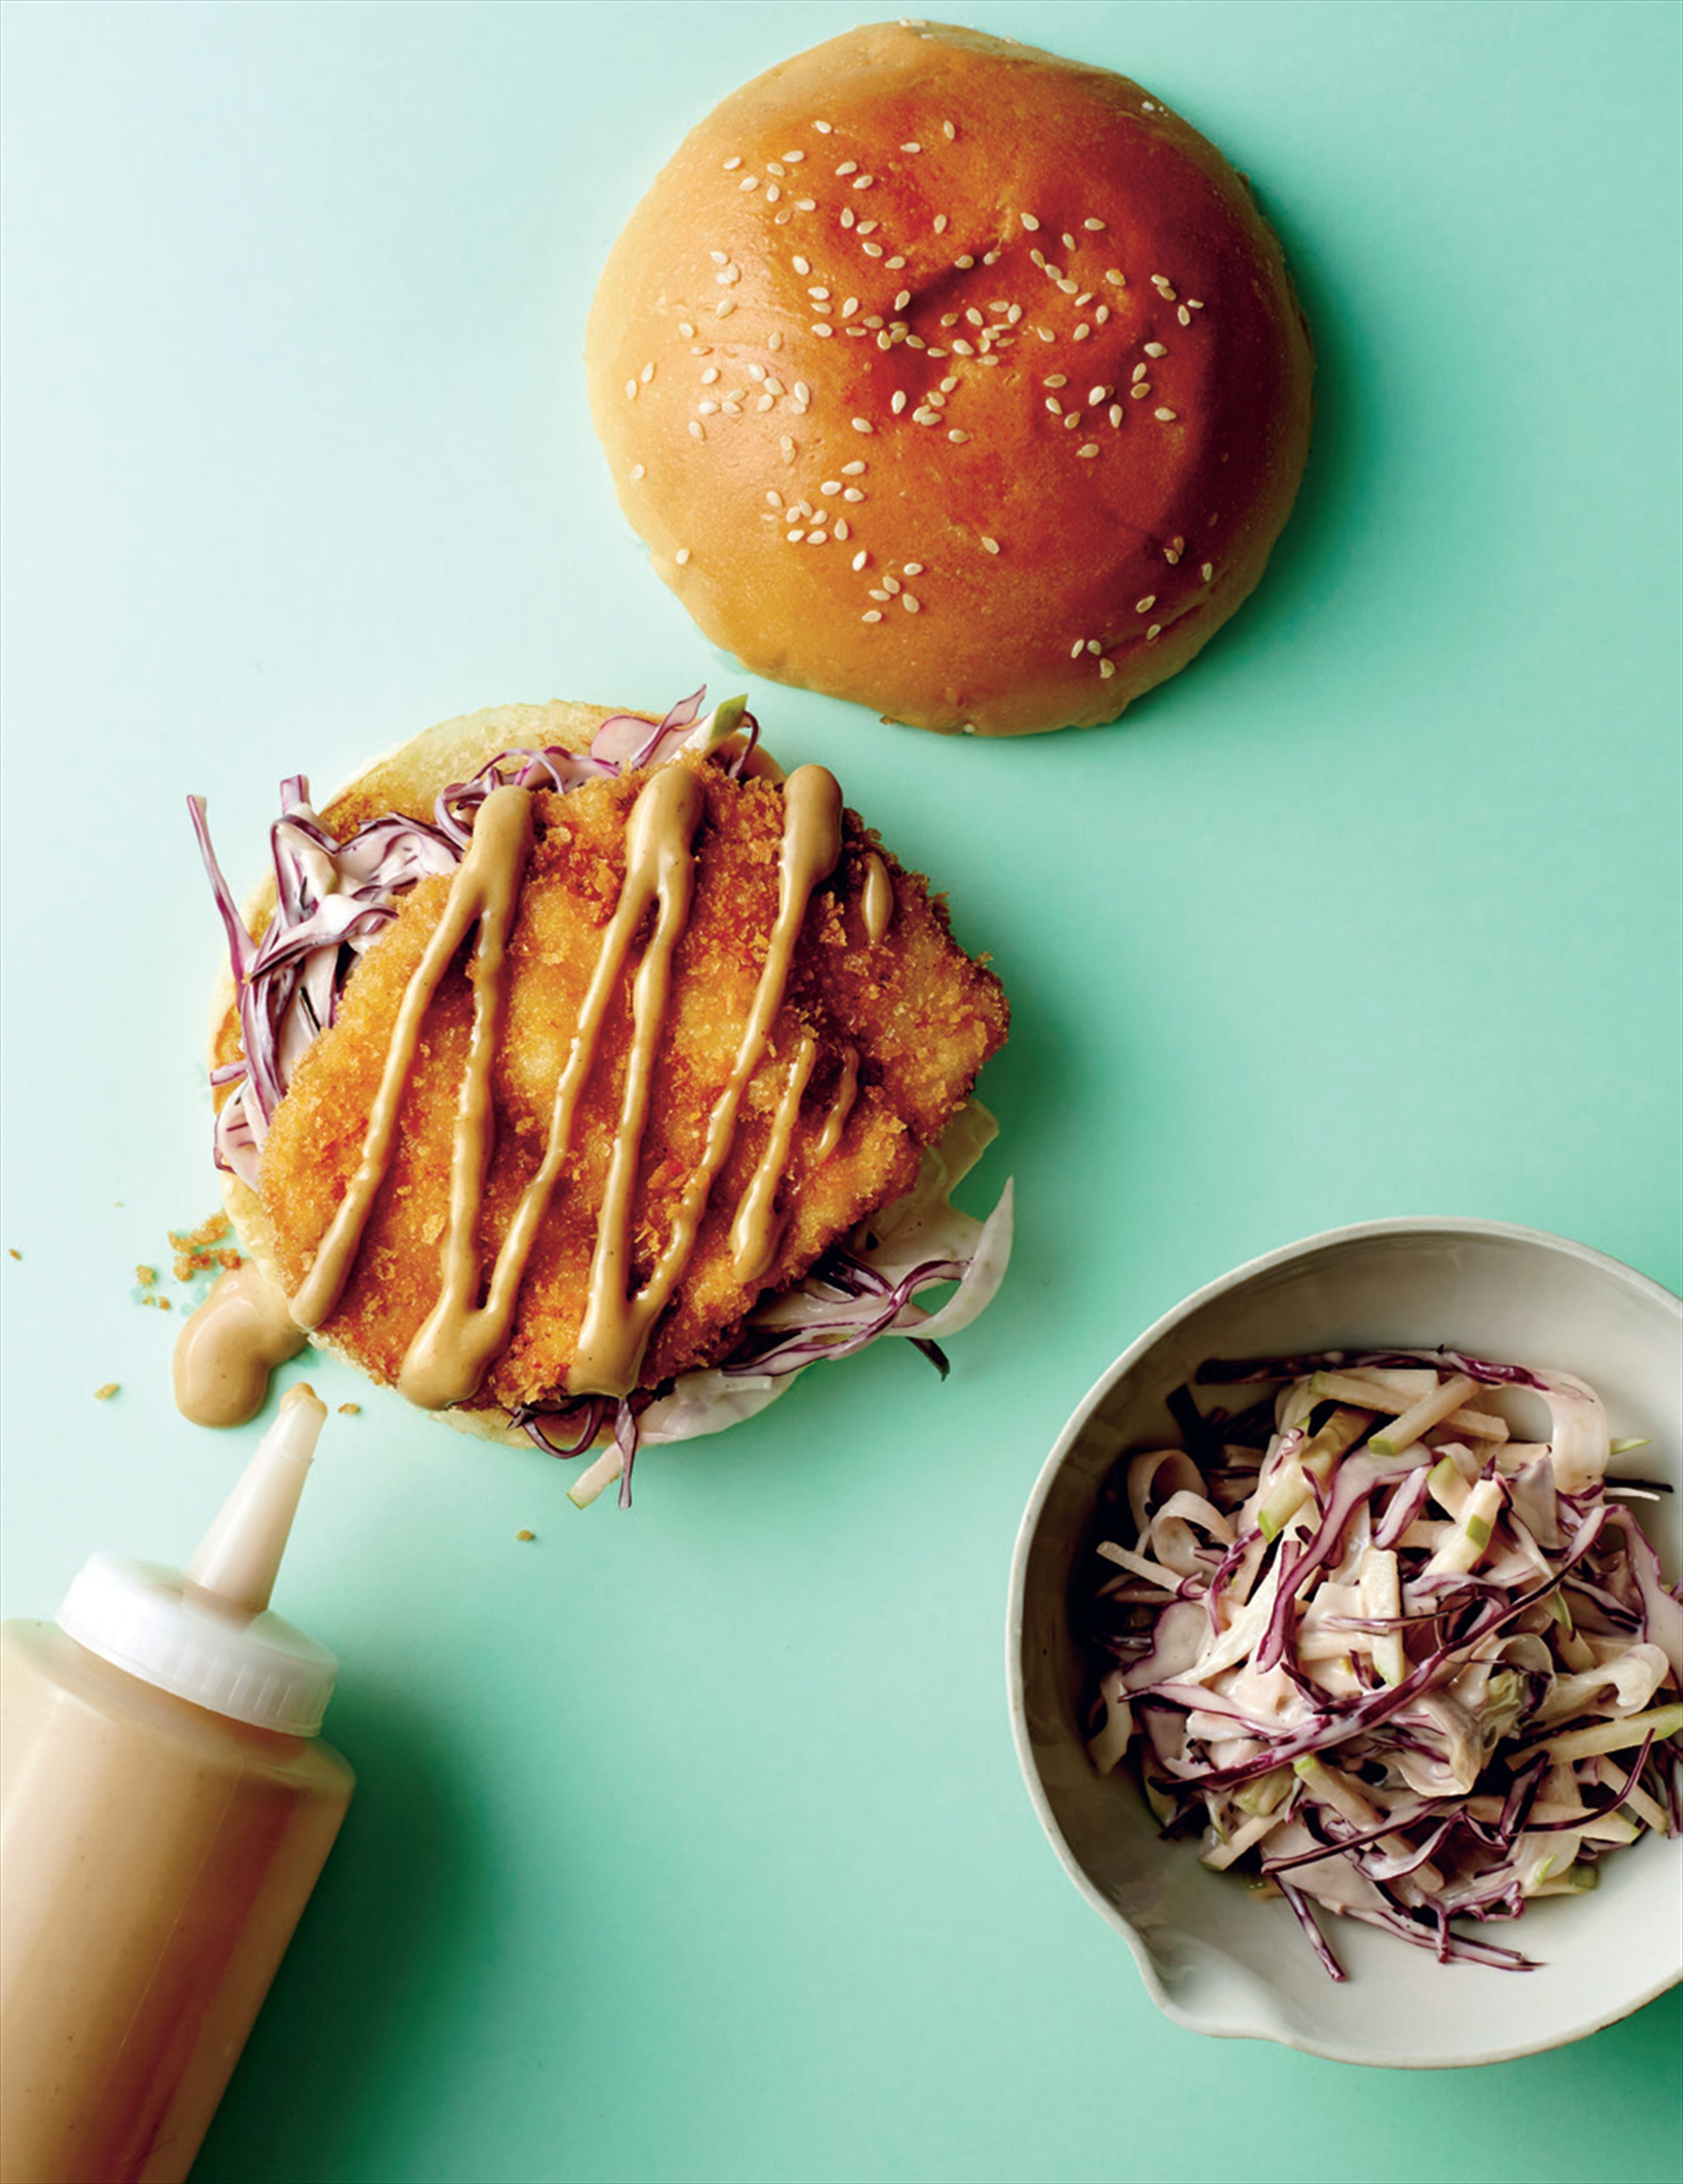 Tonkatsu pork burger with apple & fennel slaw